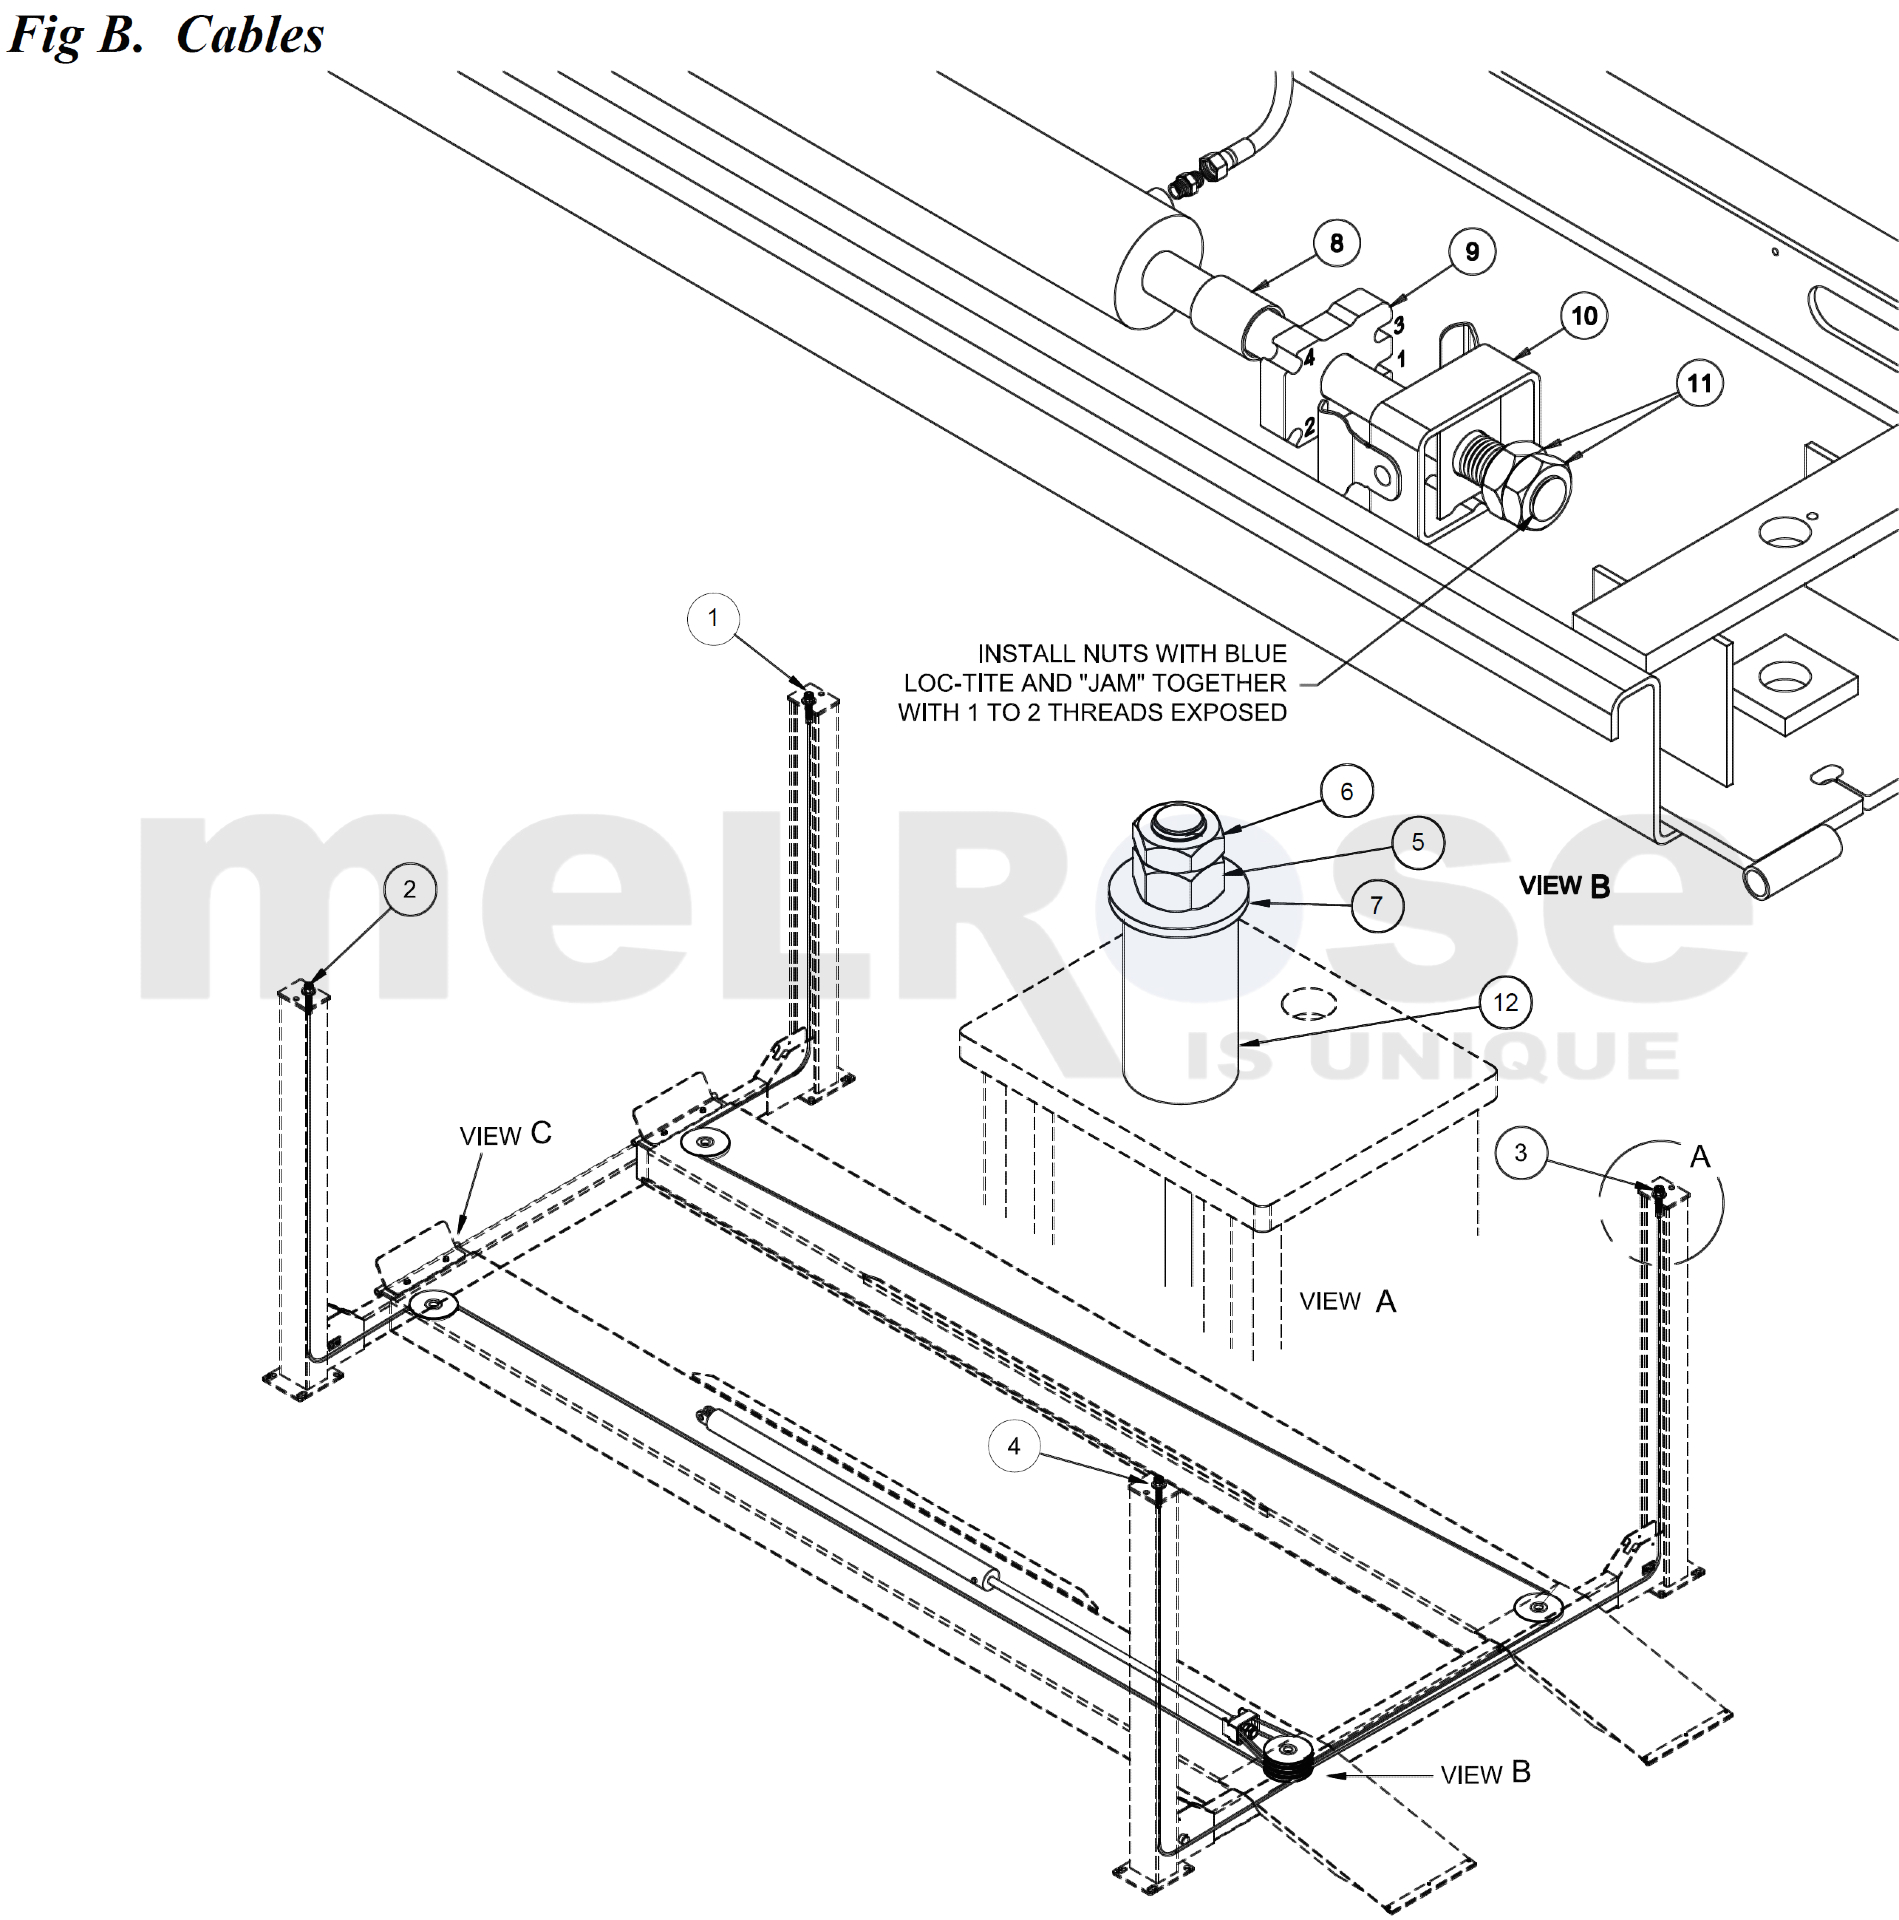 40000-closed-cables-diagram-marked.jpg